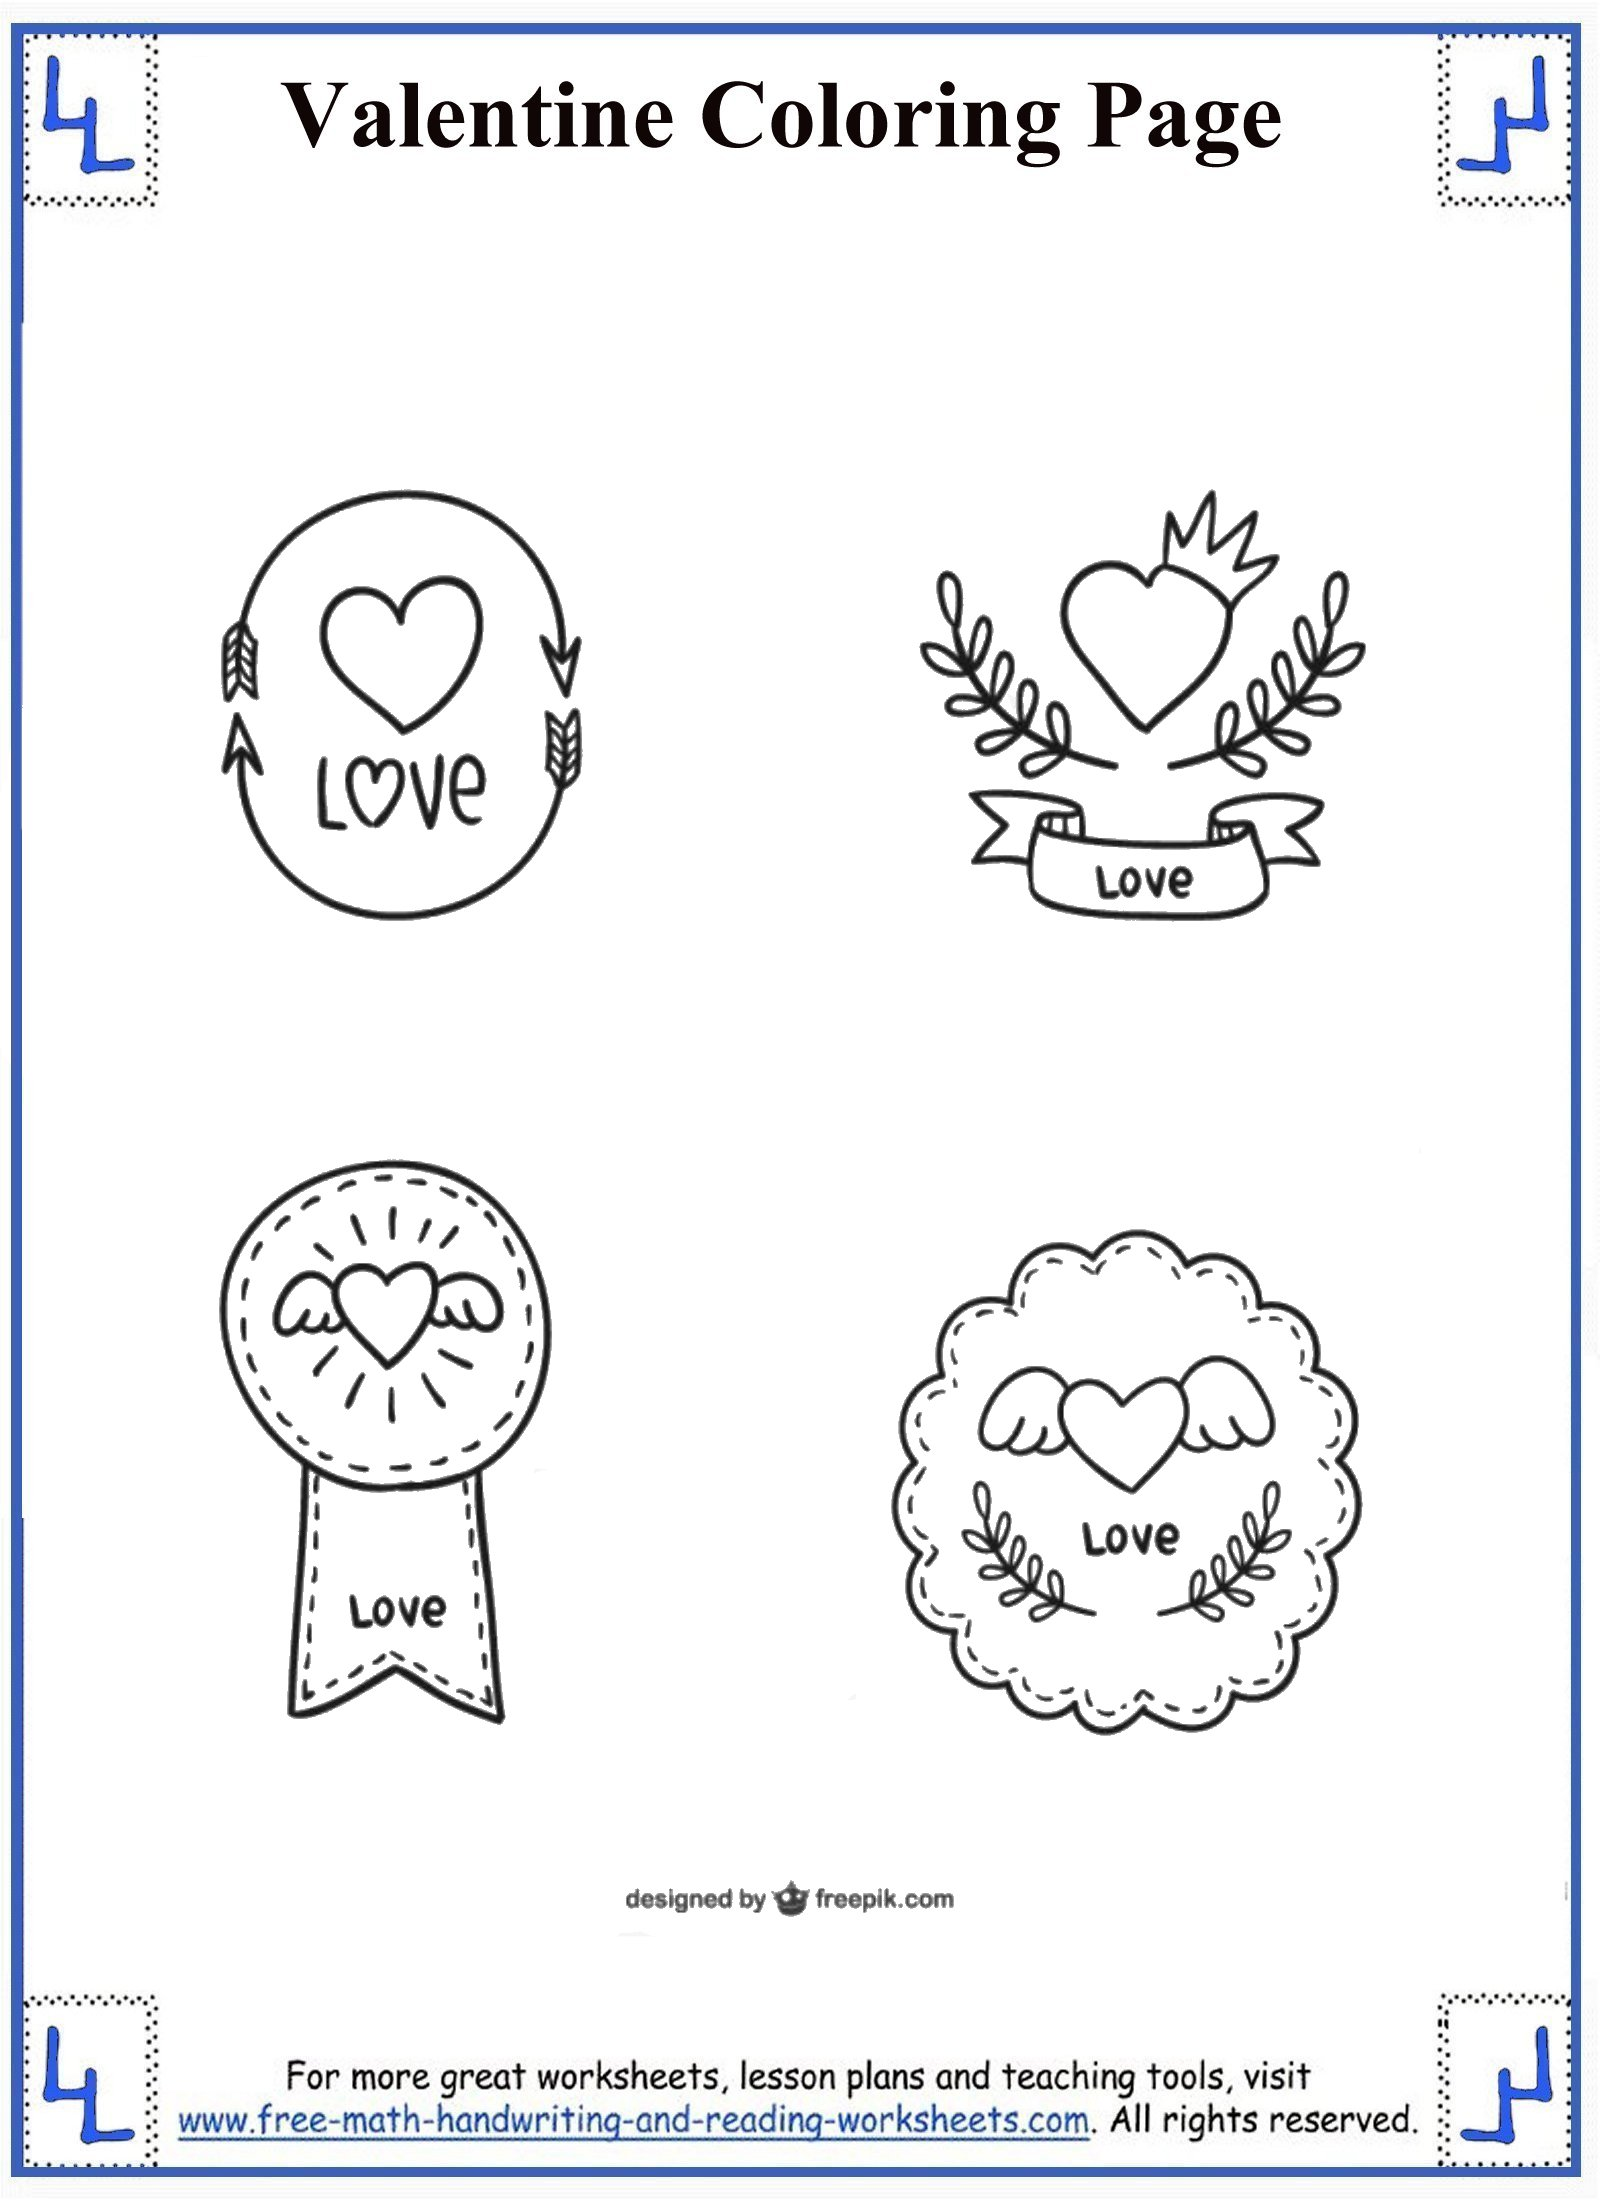 Valentine Coloring Pages